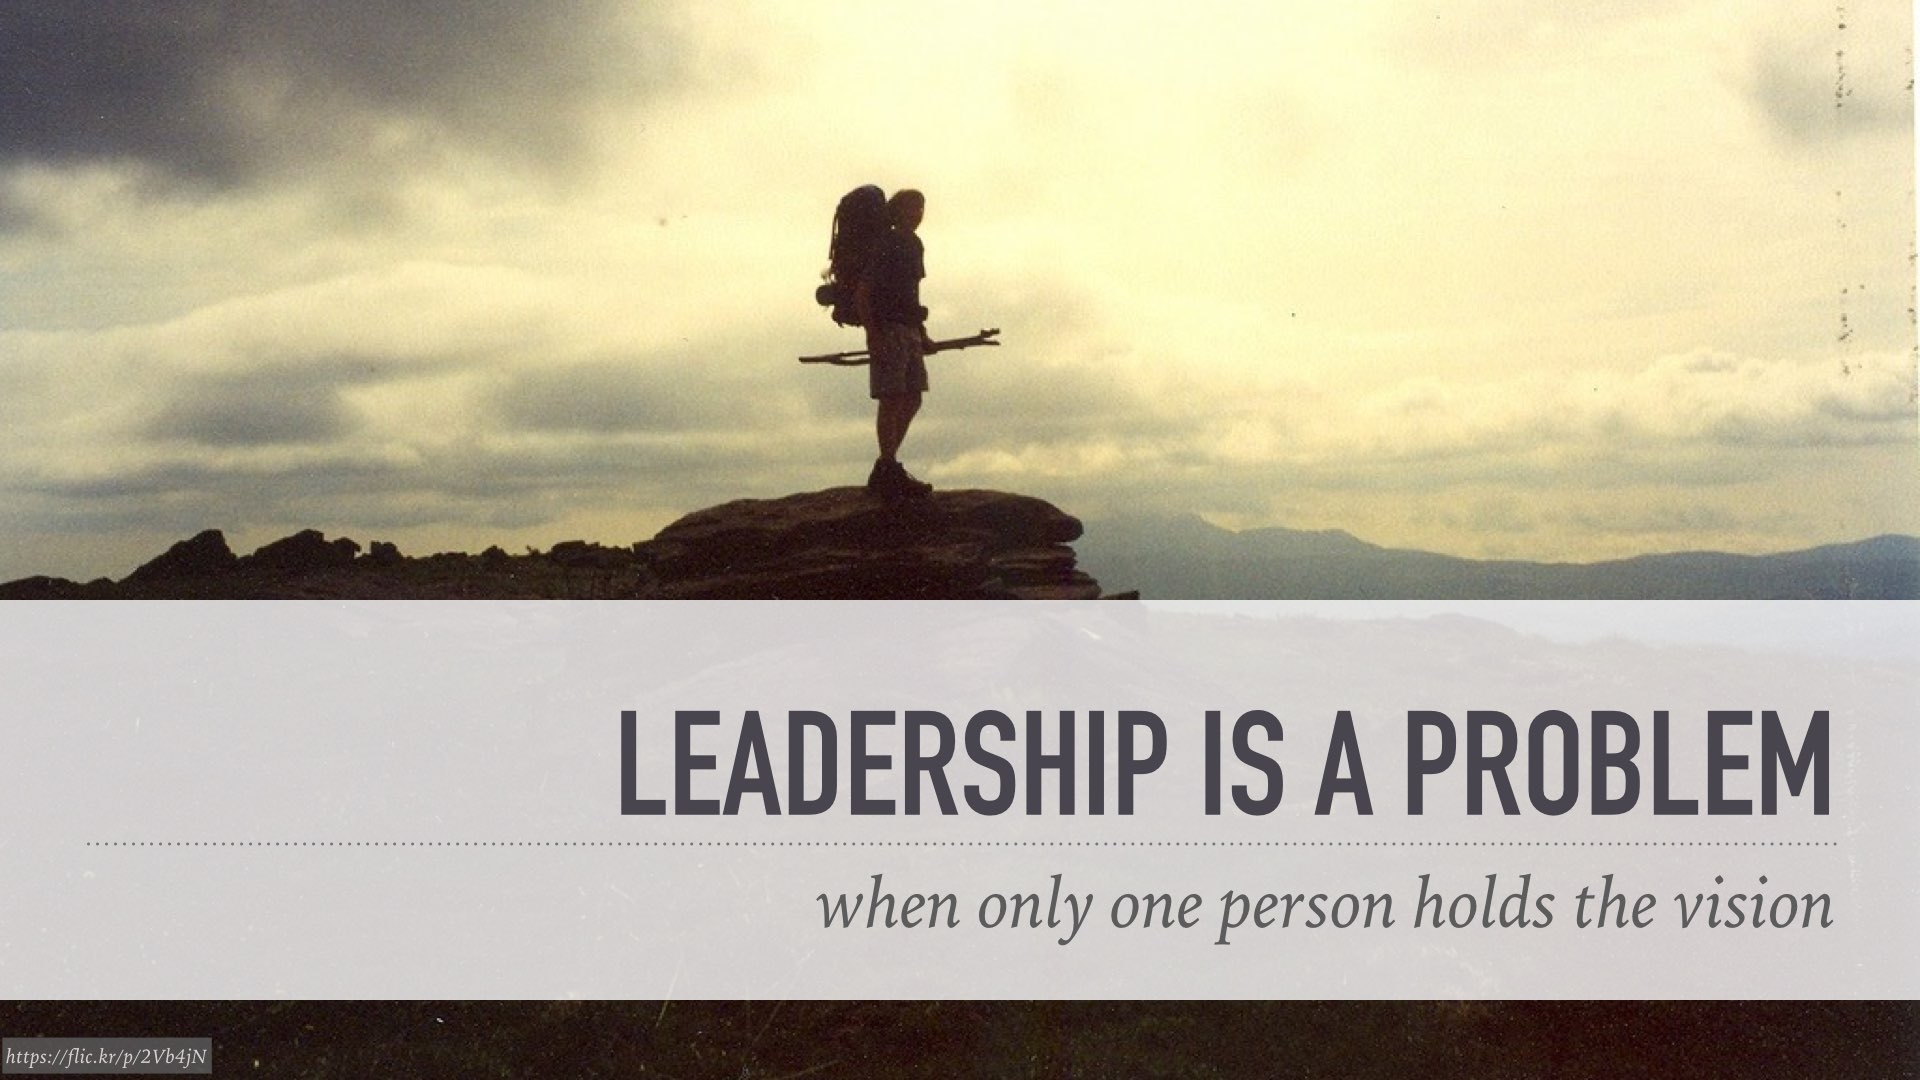 leadership is a problem when only one person holds the vision